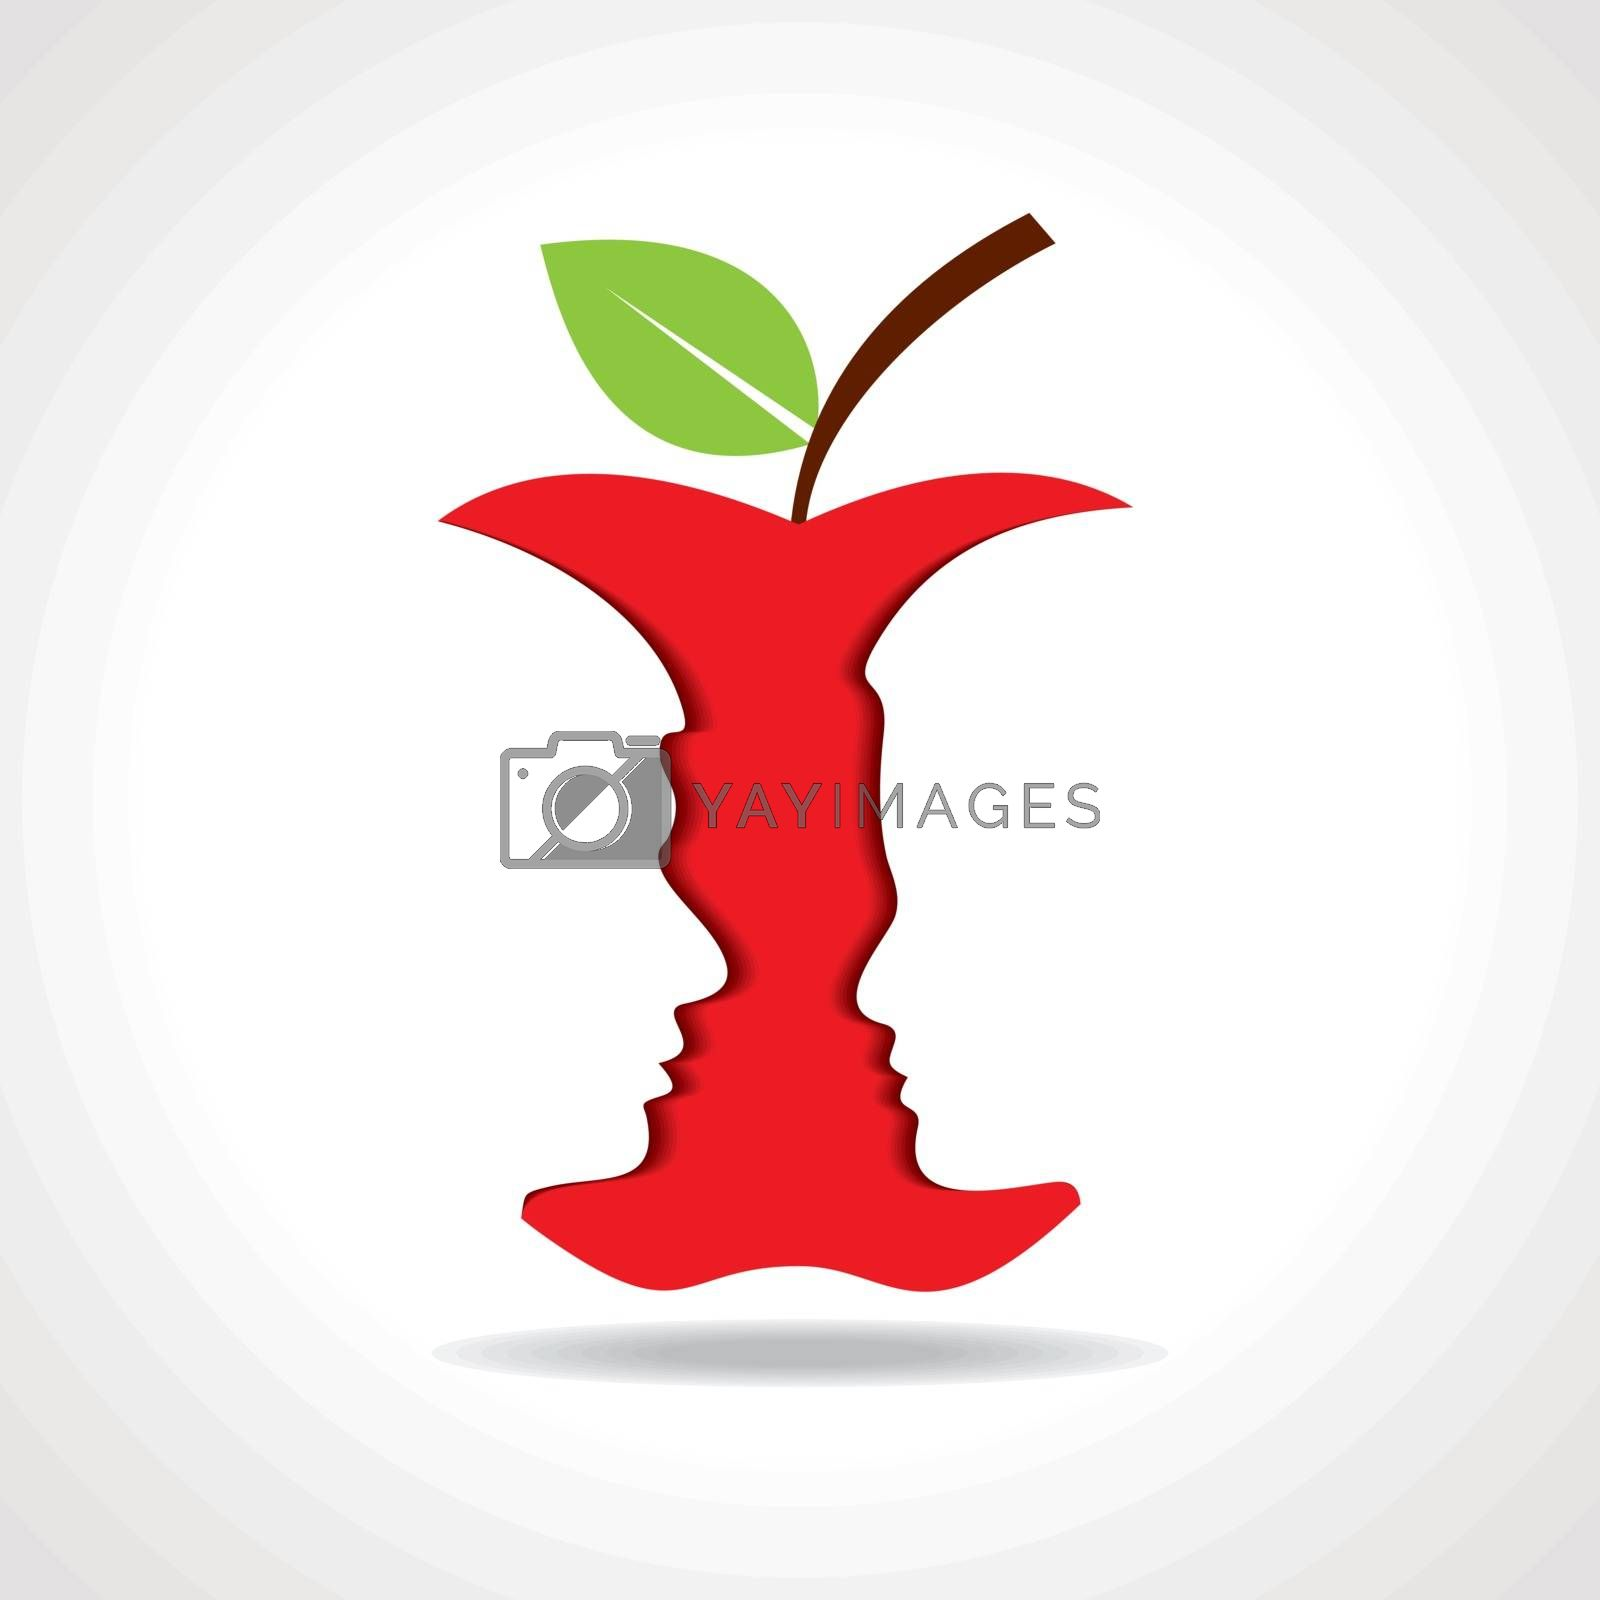 Male and female face with apple stock vector